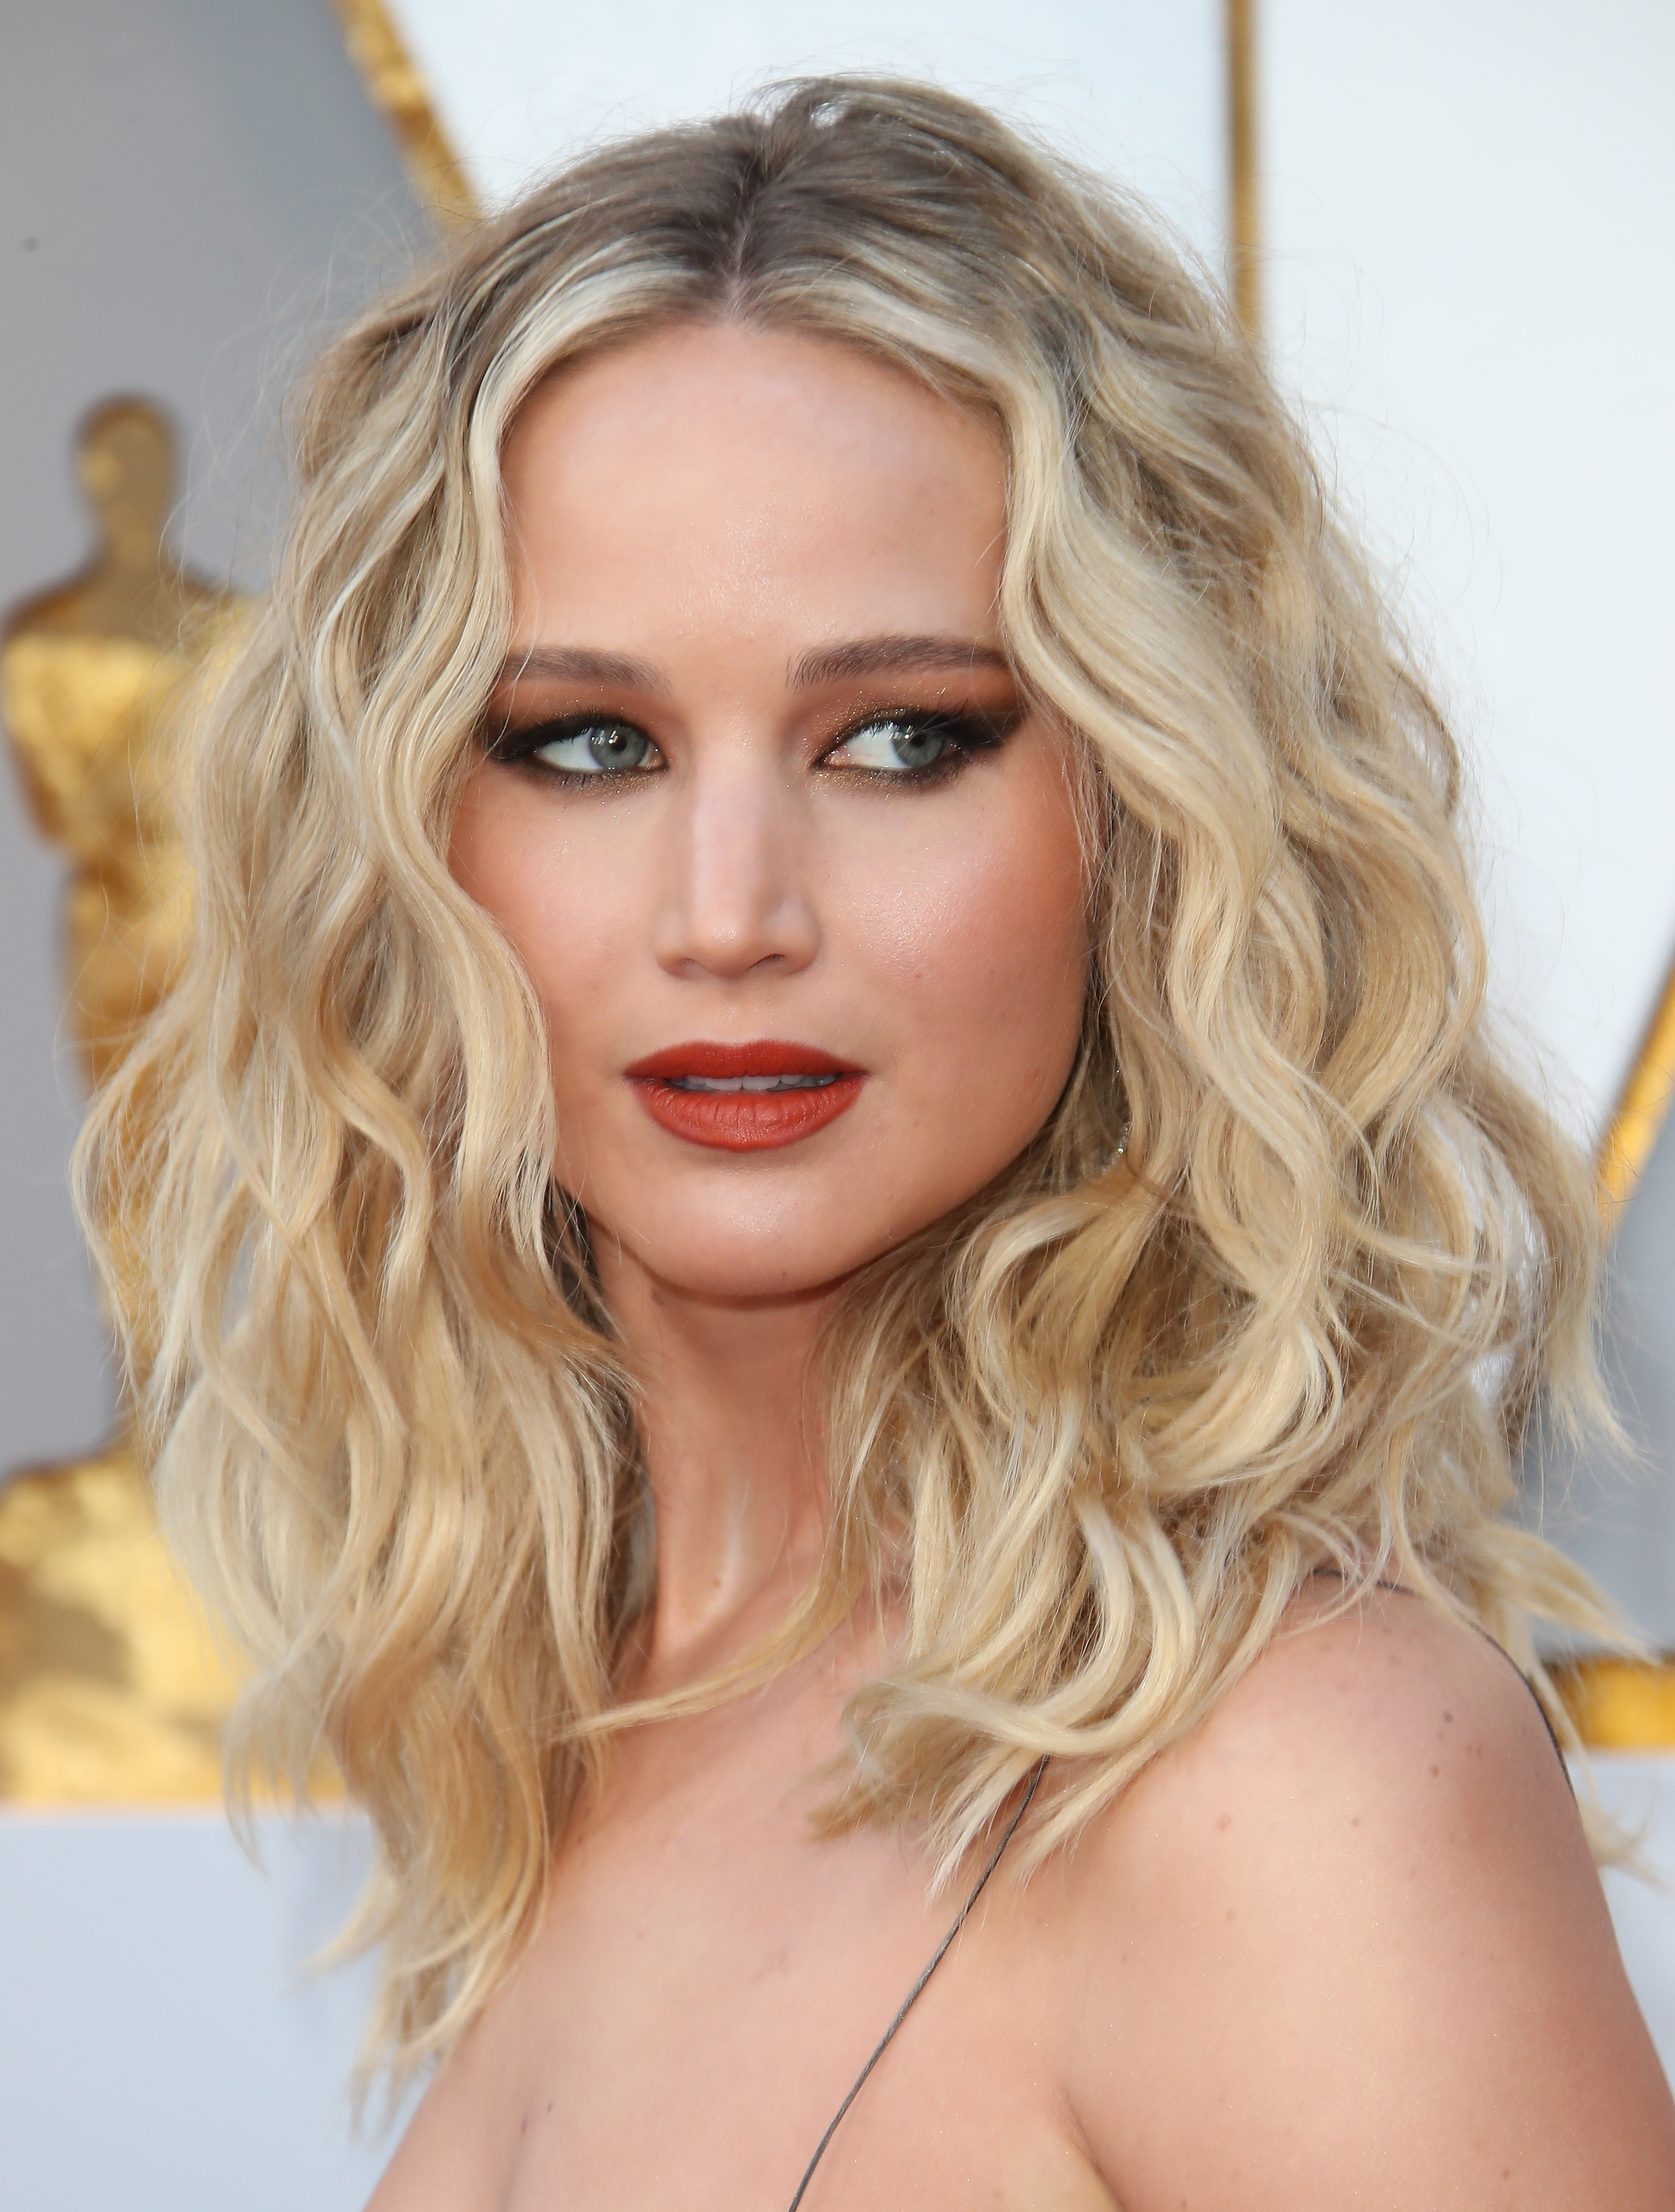 <p>We're not afraid to admit it. We absolutely adore everything about Jennifer Lawrence.</p> <p>Her frank, funny and forthright manner, her incredible acting chops (she's the winner of an Oscar, three Golden Globes and a BAFTA), and of course, her hilarious willingness to speak her mind.</p> <p>But what really causes us to lose our collective s*&t over J-Law is that hair. </p> <p>This actress turns 28 this week and what better way to celebrate her birthday than take a look back at her Oscar-worthy winning hair looks.</p> <p>Call us shallow but we can't get past the fact that the incredible actress has no fear when it comes to both cut and colour. She's willing to try pretty much anything and everything. And we love her for it.</p> <p>Click on through and we're pretty sure you will too. After all, who can resist.</p>